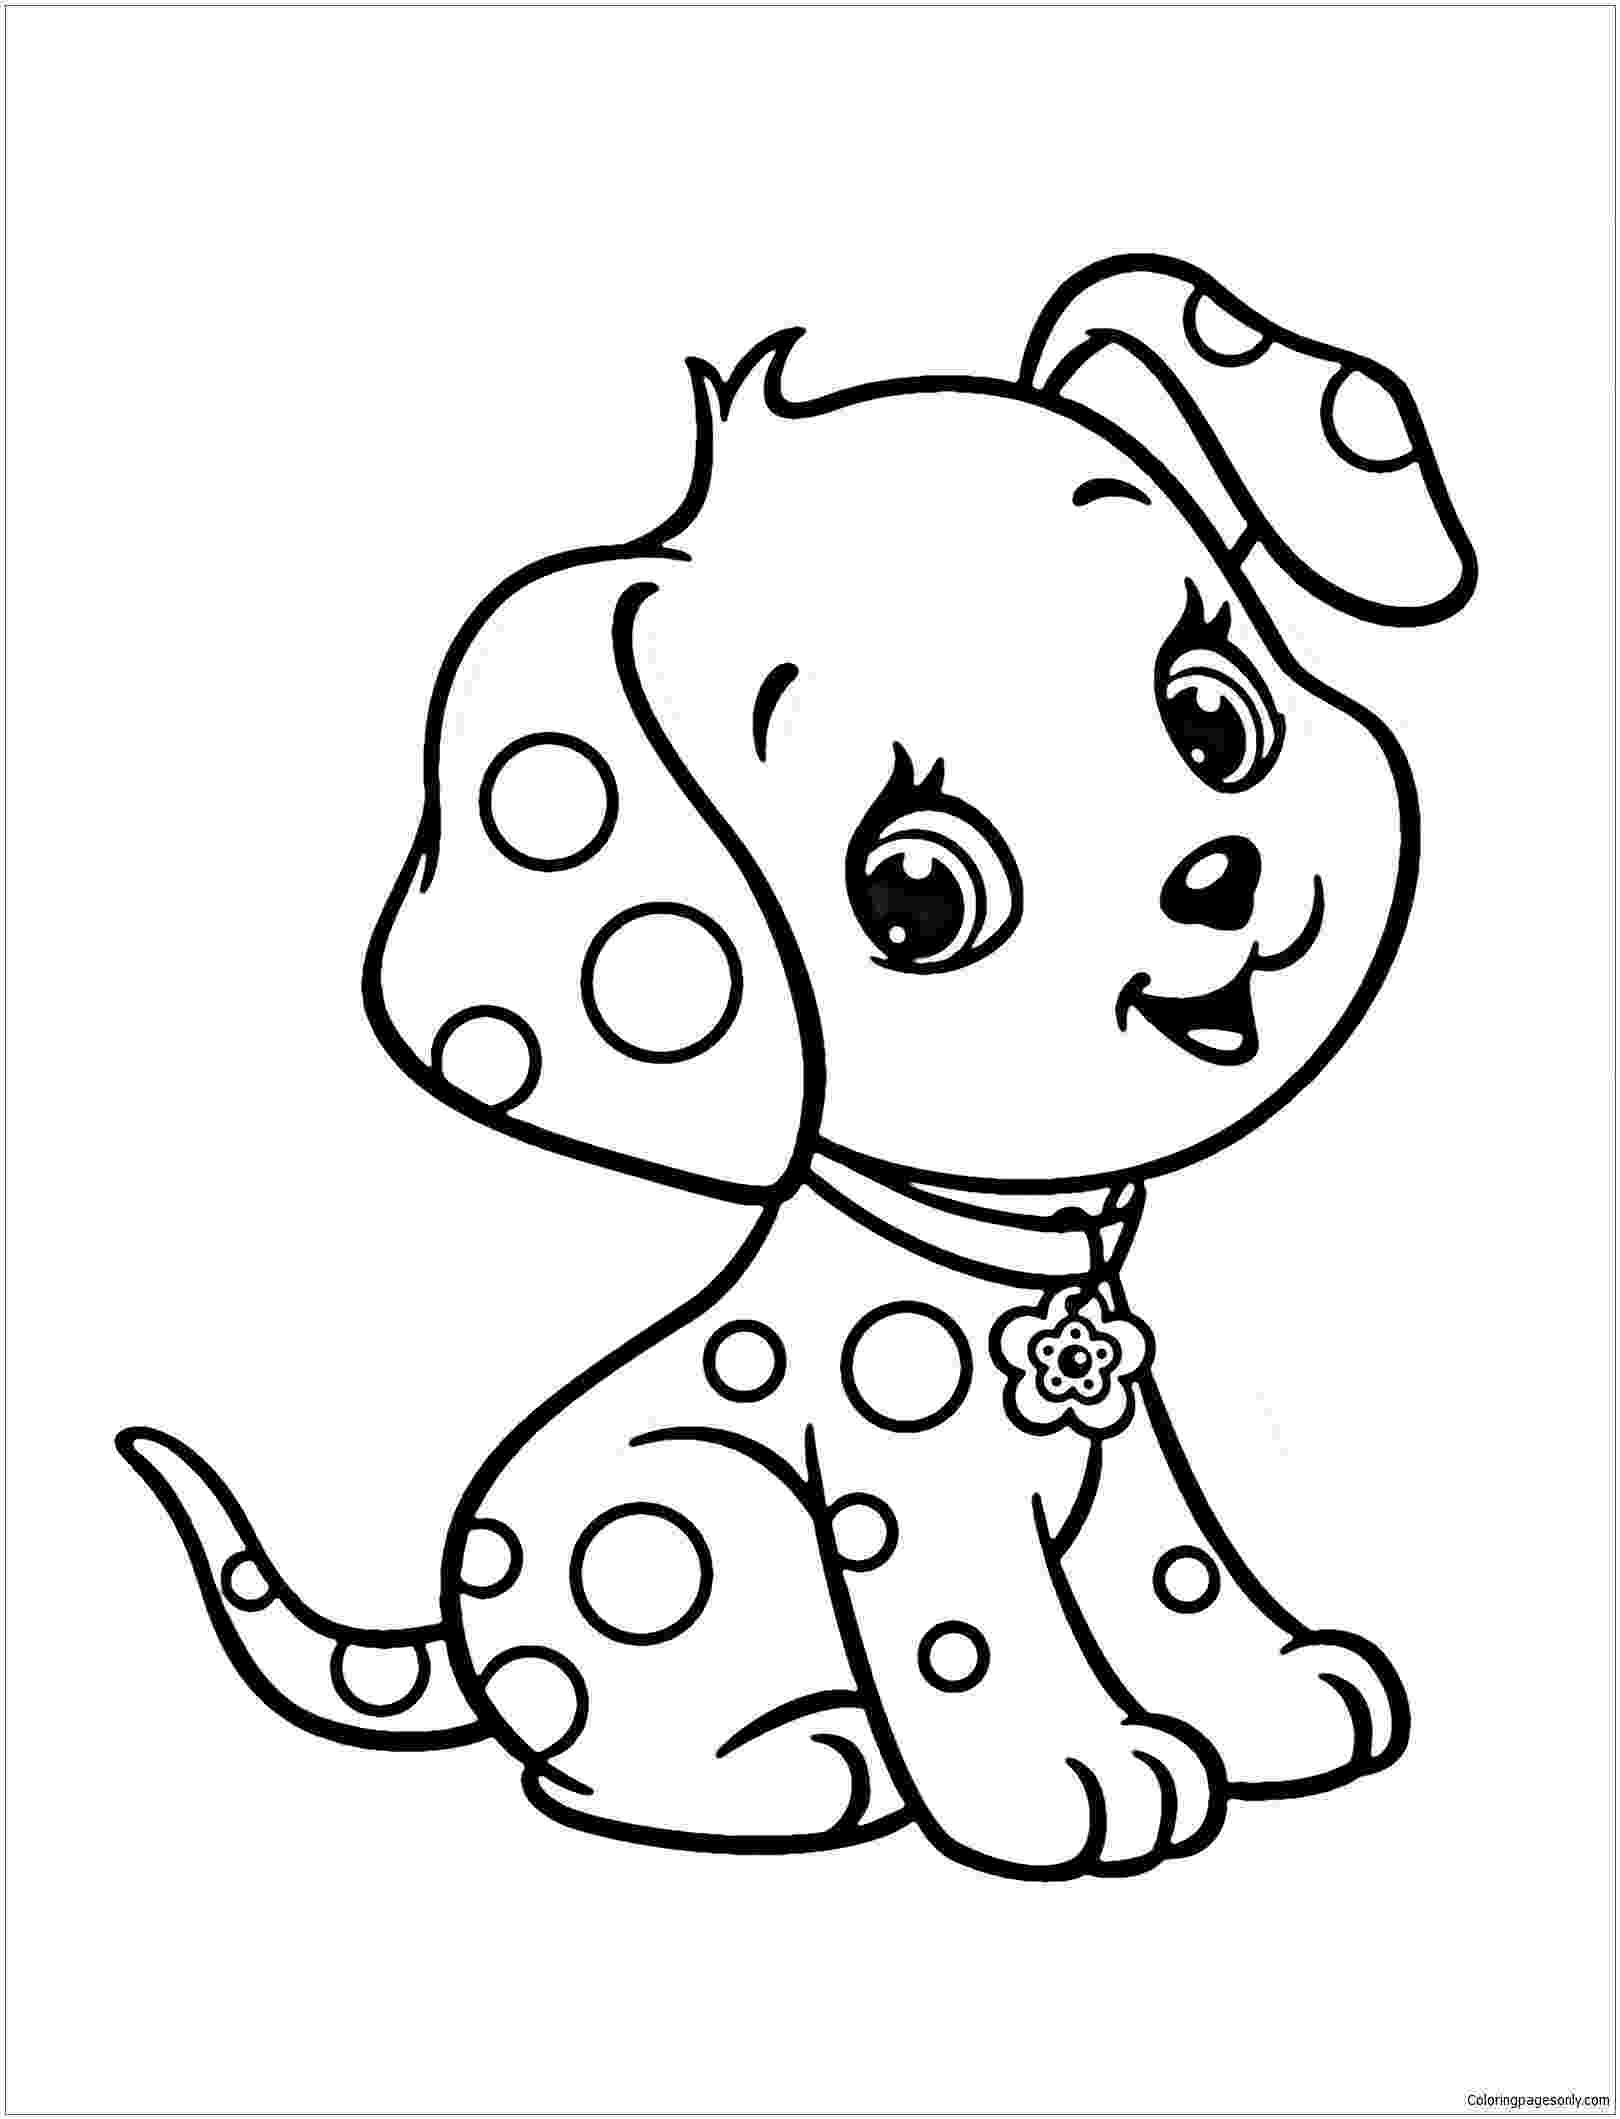 puppy coloring pages printable puppy coloring pages for kids cool2bkids coloring pages puppy